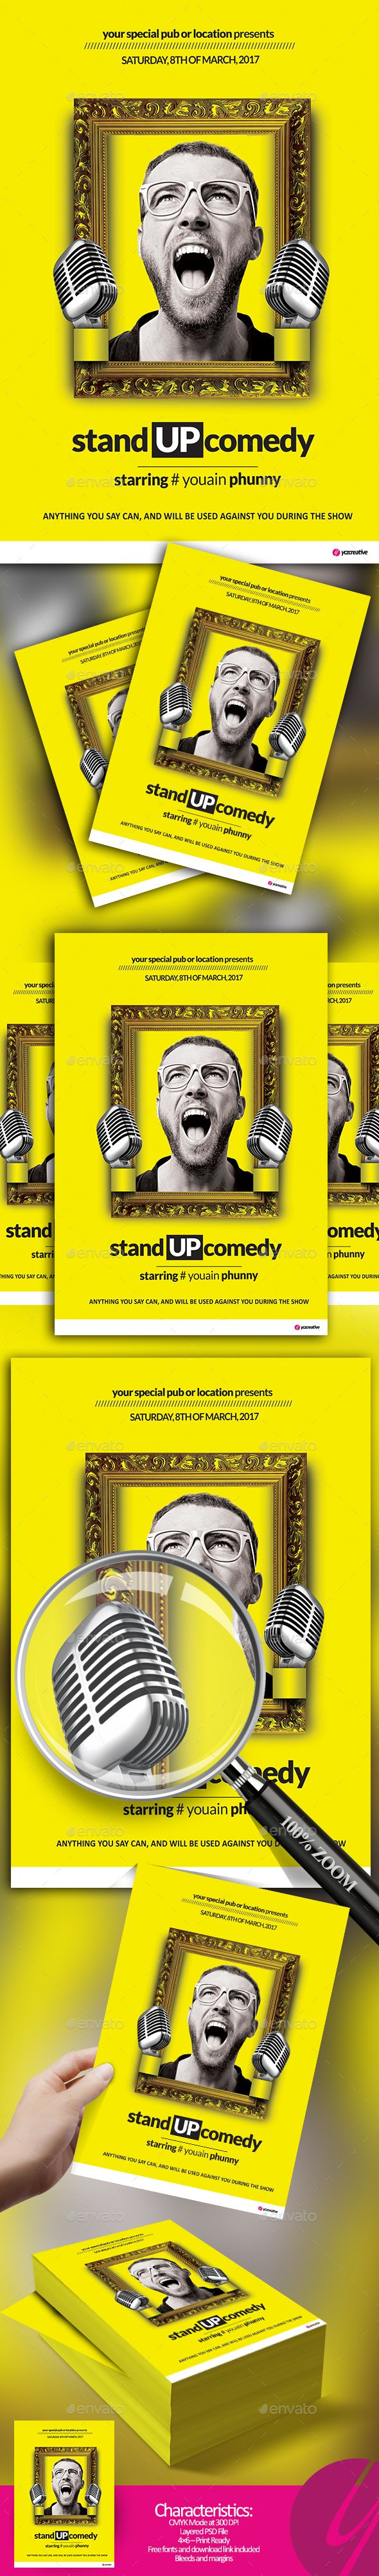 16 best comedy show design images on pinterest posters comedy and